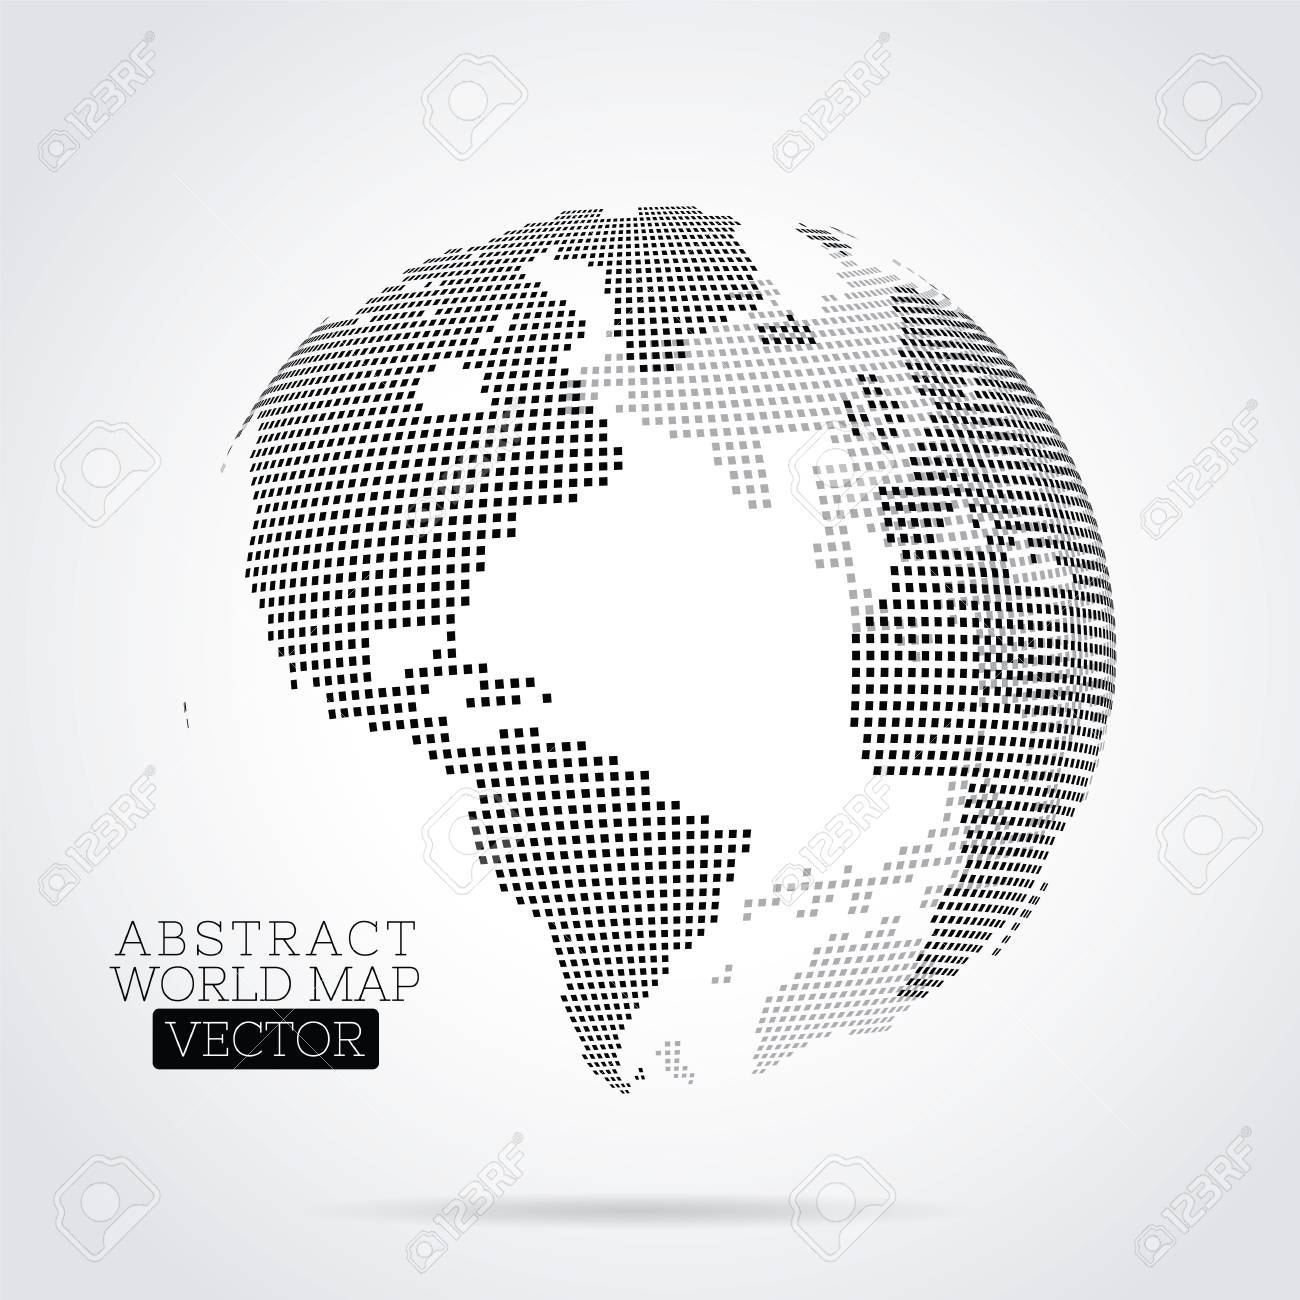 Pixel world map made from small squares royalty free cliparts pixel world map made from small squares stock vector 91822209 gumiabroncs Choice Image